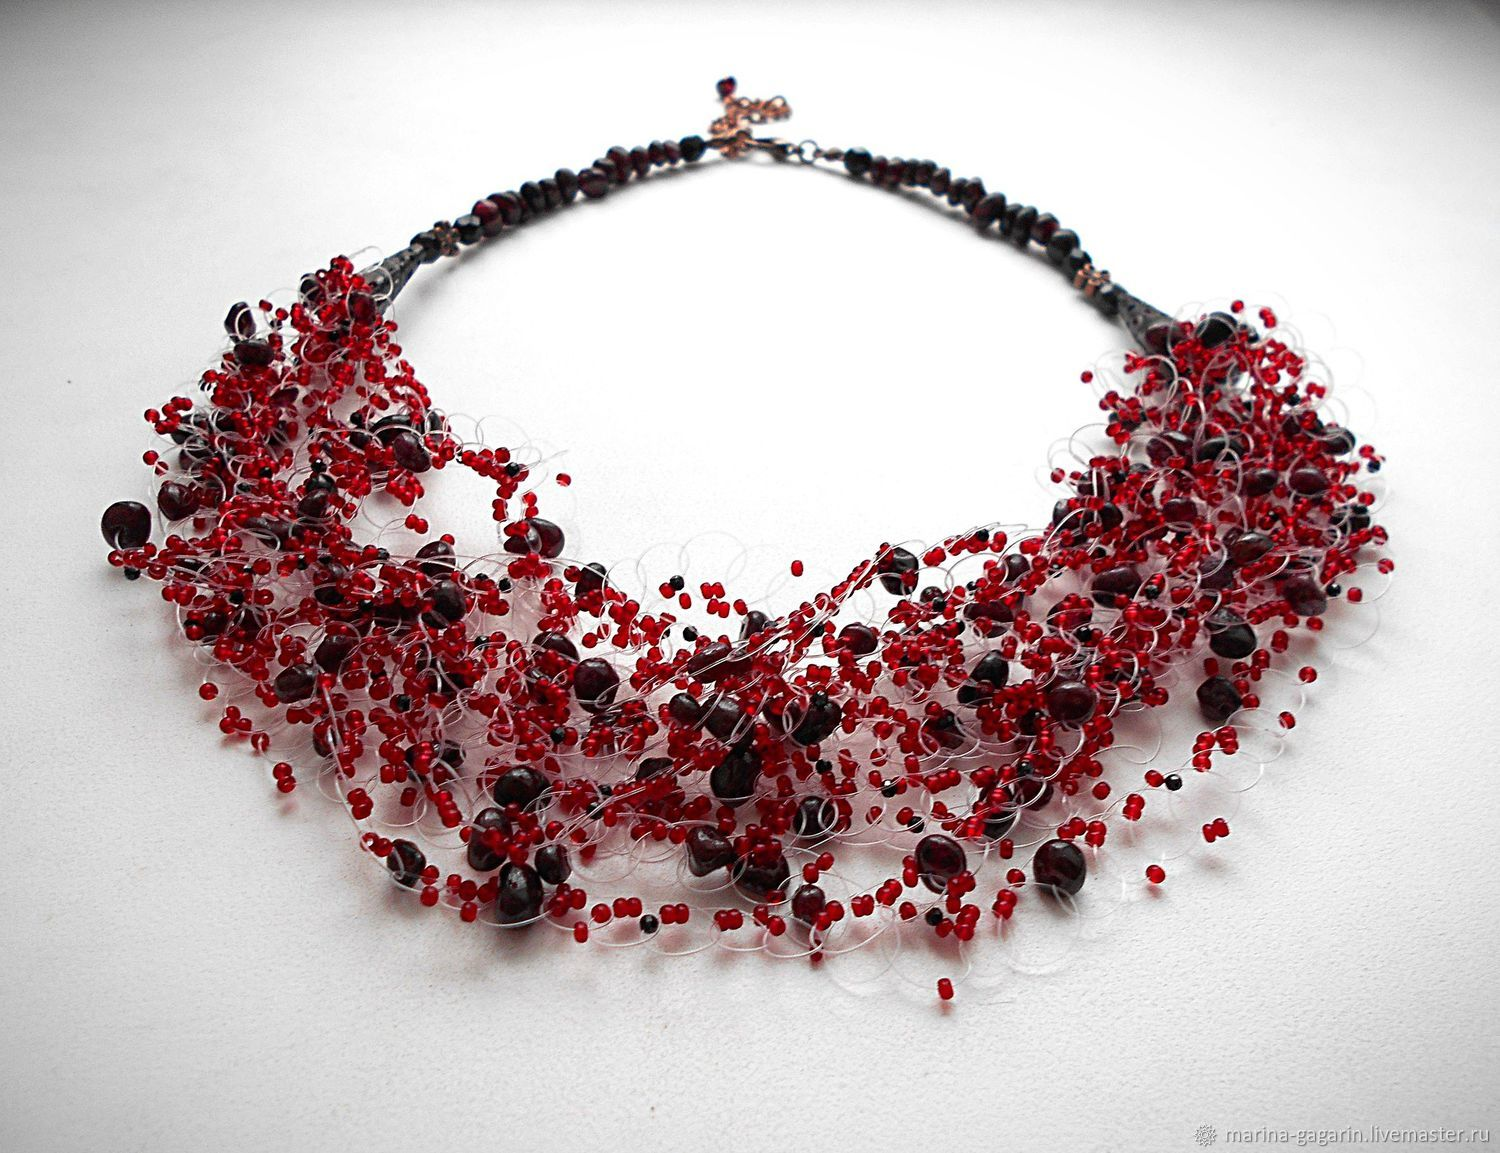 air splash blac item pomegranate mixed necklace black beads garnet bordeaux wine technique